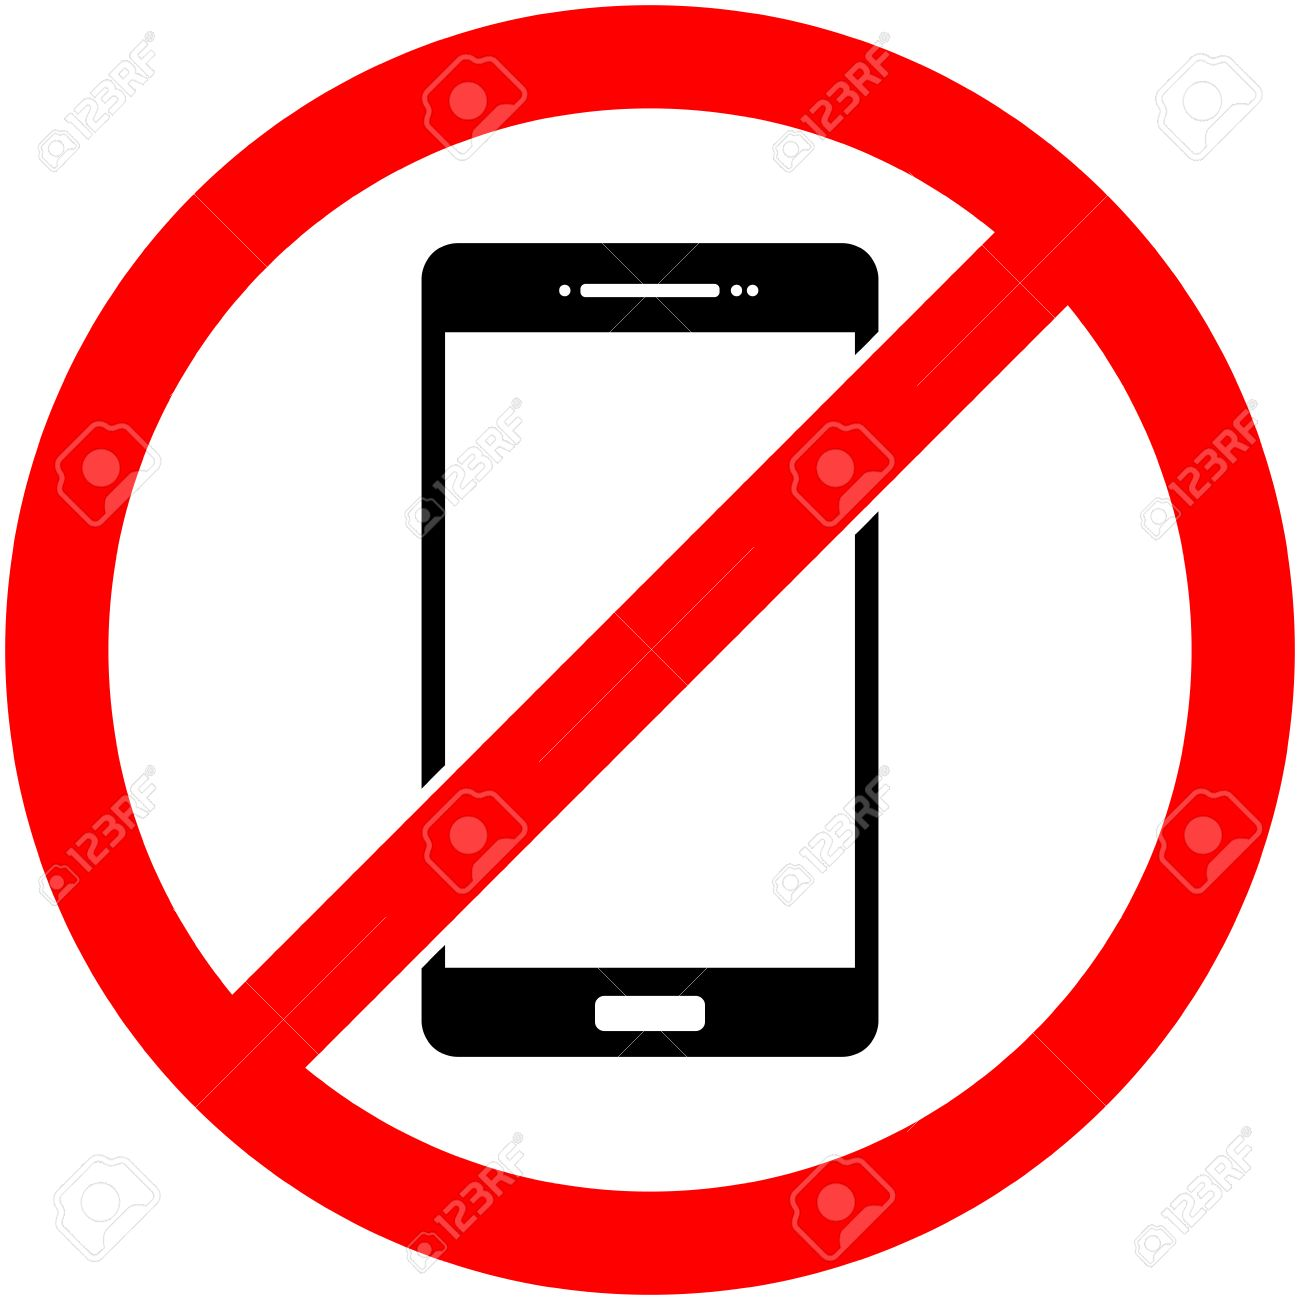 No Phone, Telephone, Cellphone And Smartphone Prohibited Symbol... Royalty  Free Cliparts, Vectors, And Stock Illustration. Image 56633472.